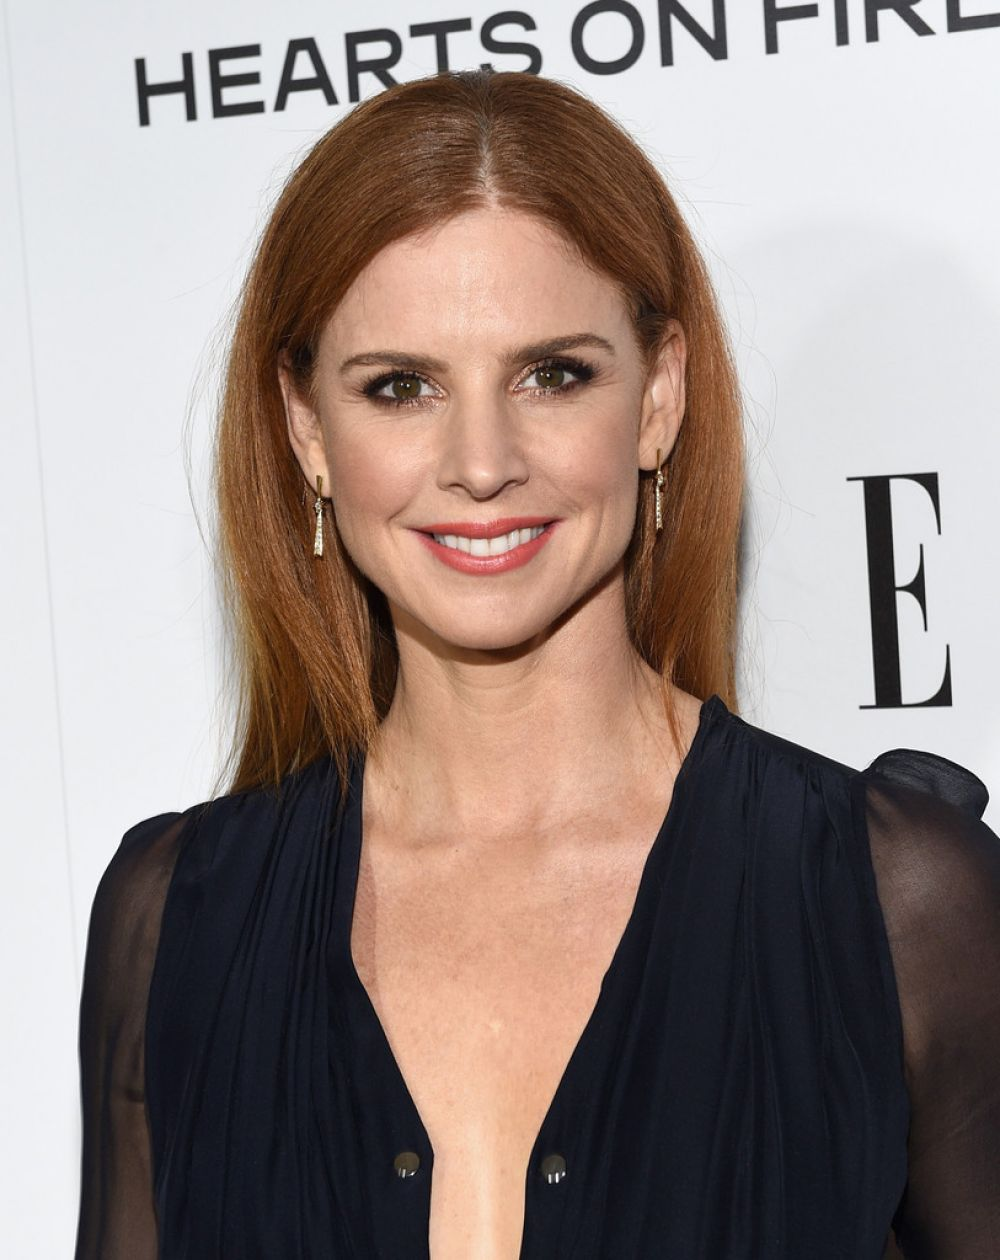 Sarah Rafferty earned a unknown million dollar salary, leaving the net worth at 5 million in 2017